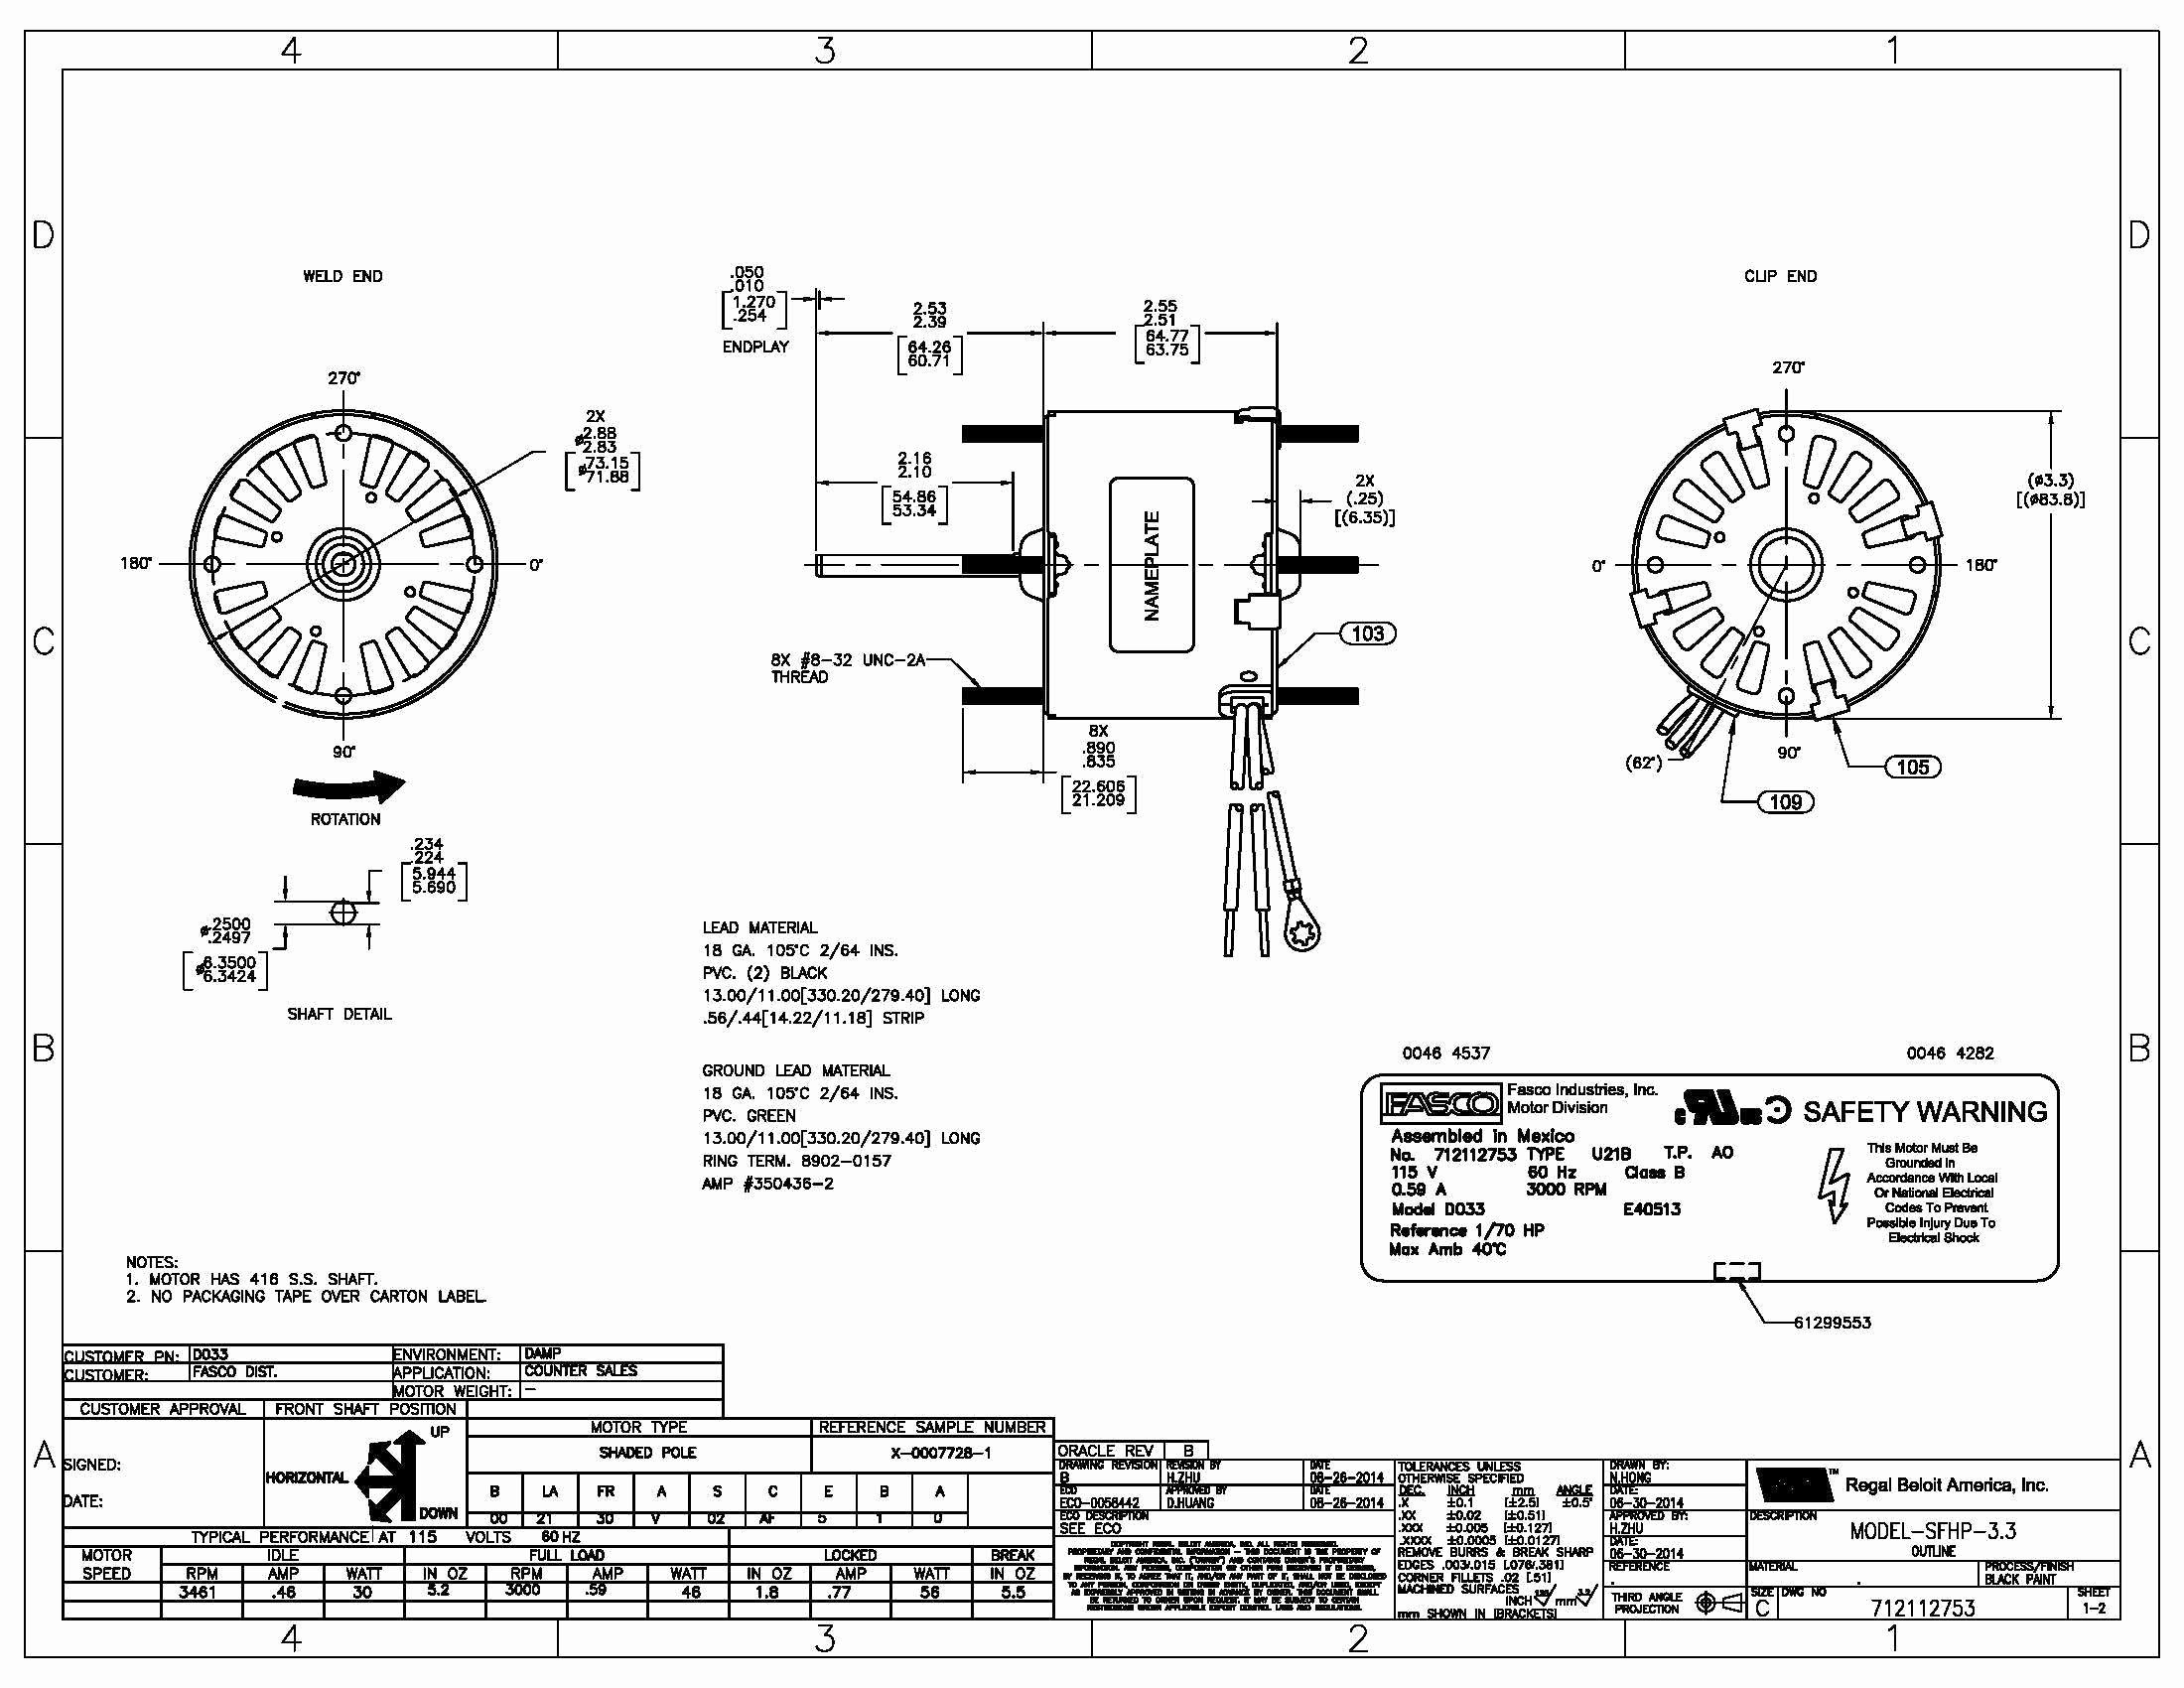 DIAGRAM] A O Smith Motor Wiring Diagram FULL Version HD Quality Wiring  Diagram - WALLETCASEFORIPHONES.RAPFRANCE.FRfasco motors wiring diagram download